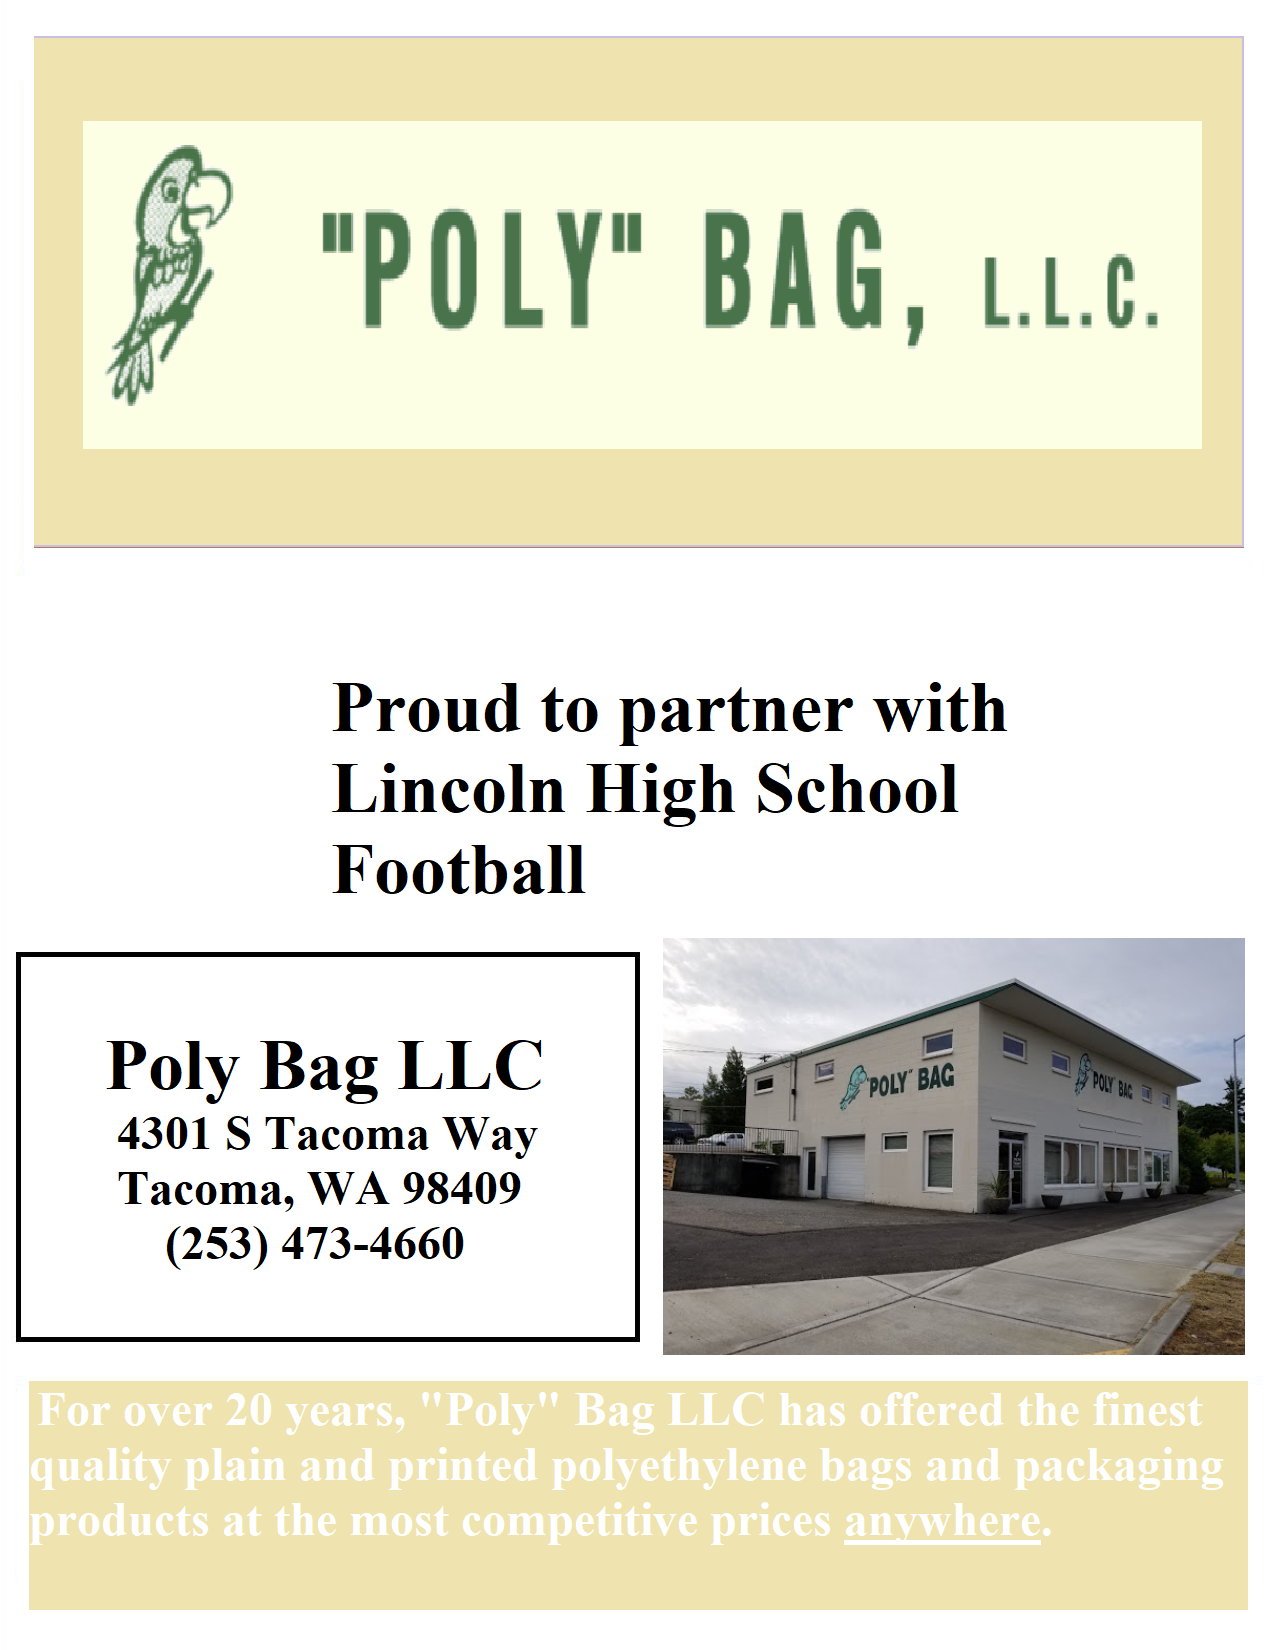 Poly Bag, LLC